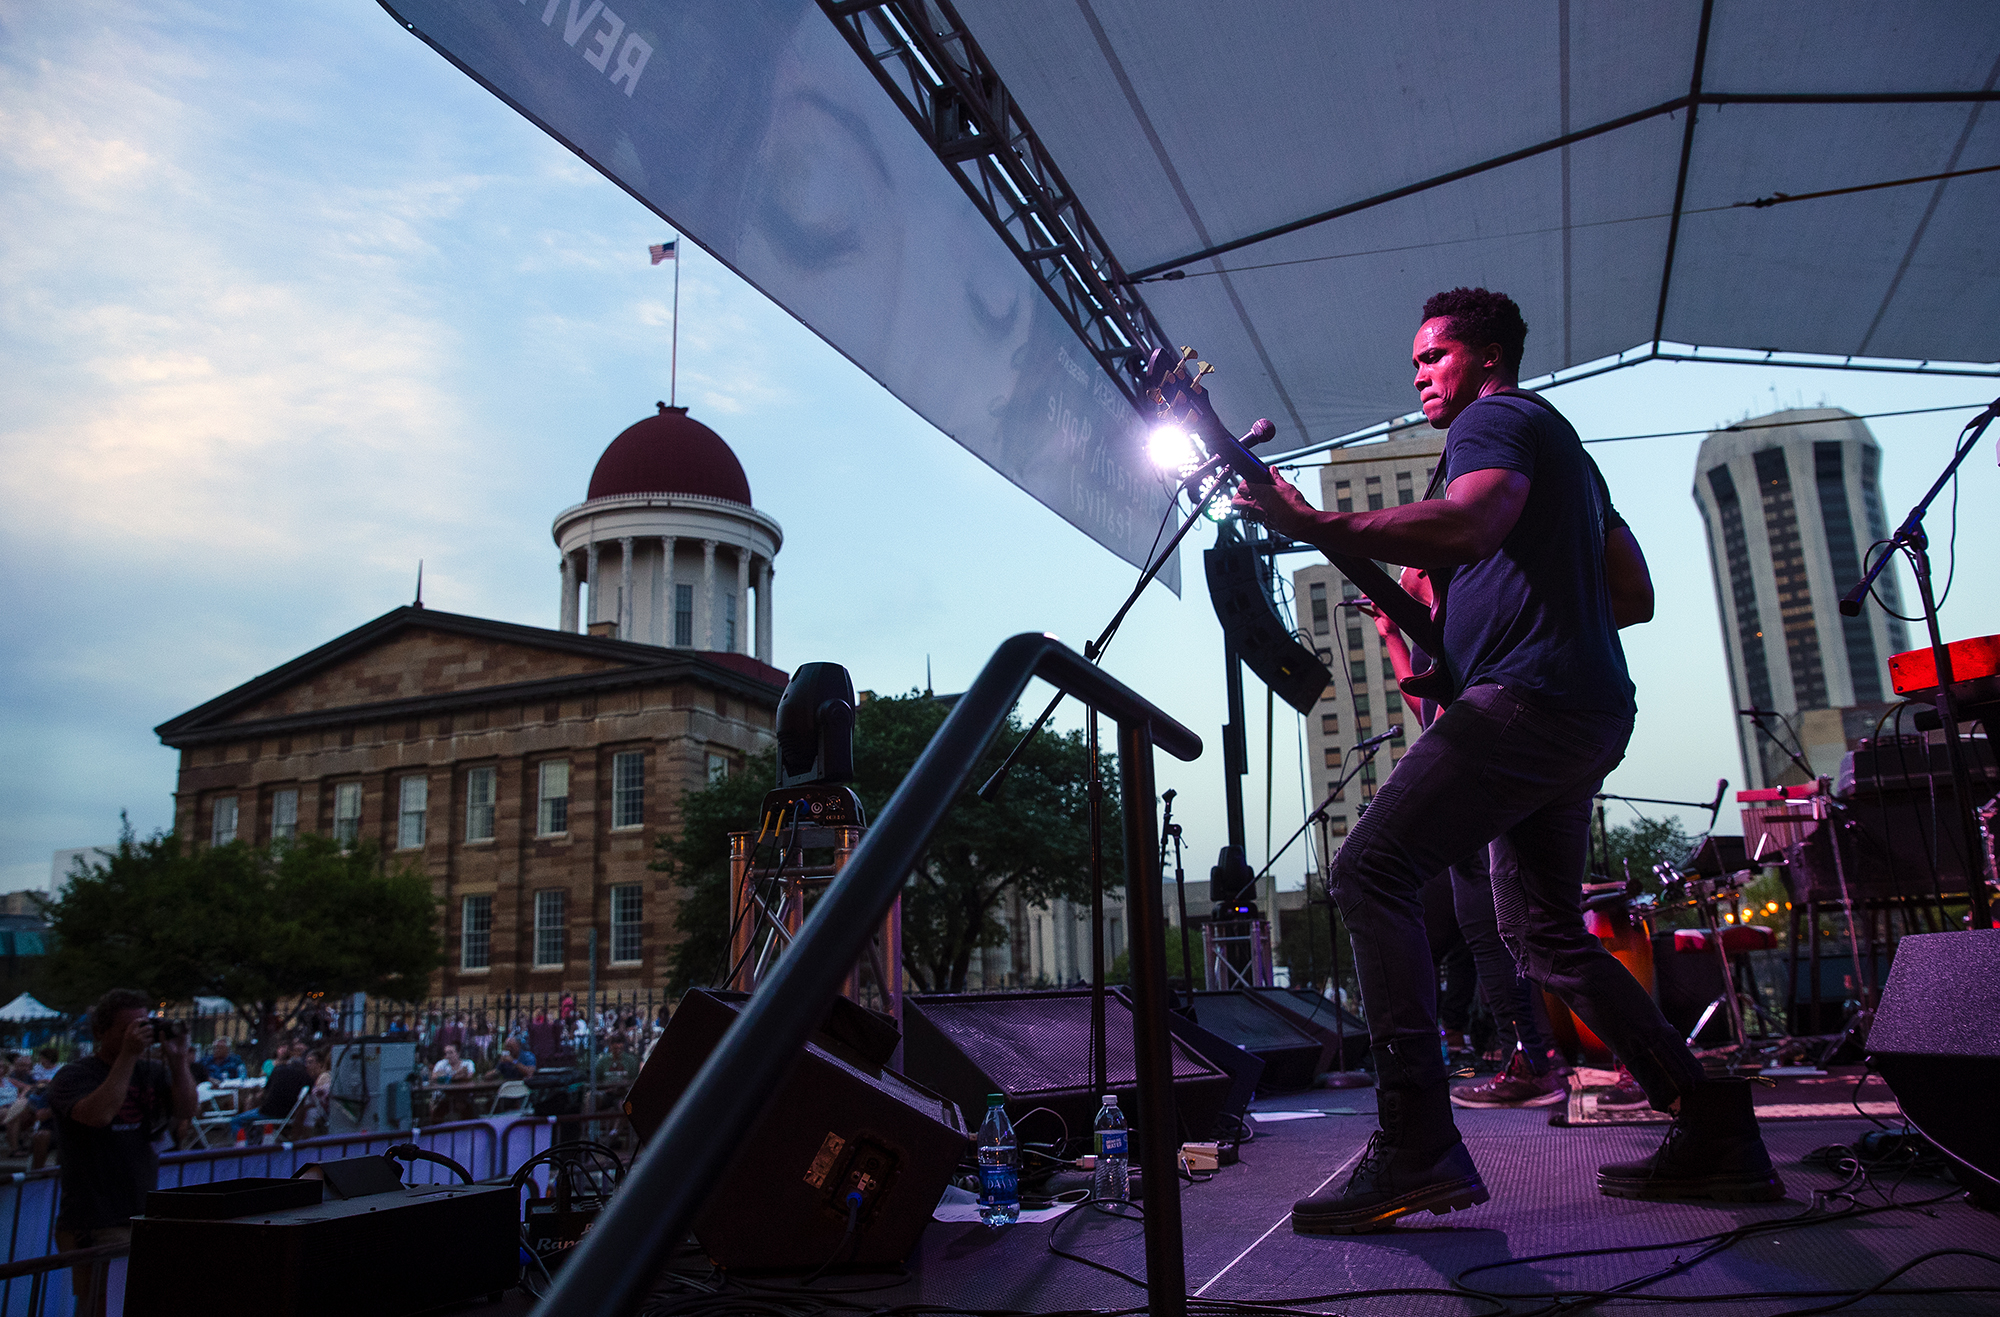 """The JC Brooks Band performs during the """"Amaranth Apple"""" Music & Food Fest Friday, July 13, 2018. The festival continues Saturday with free admission for guests under 12 years-old and $5 admission for everyone 13 years-old and up. [Ted Schurter/The State Journal-Register]"""